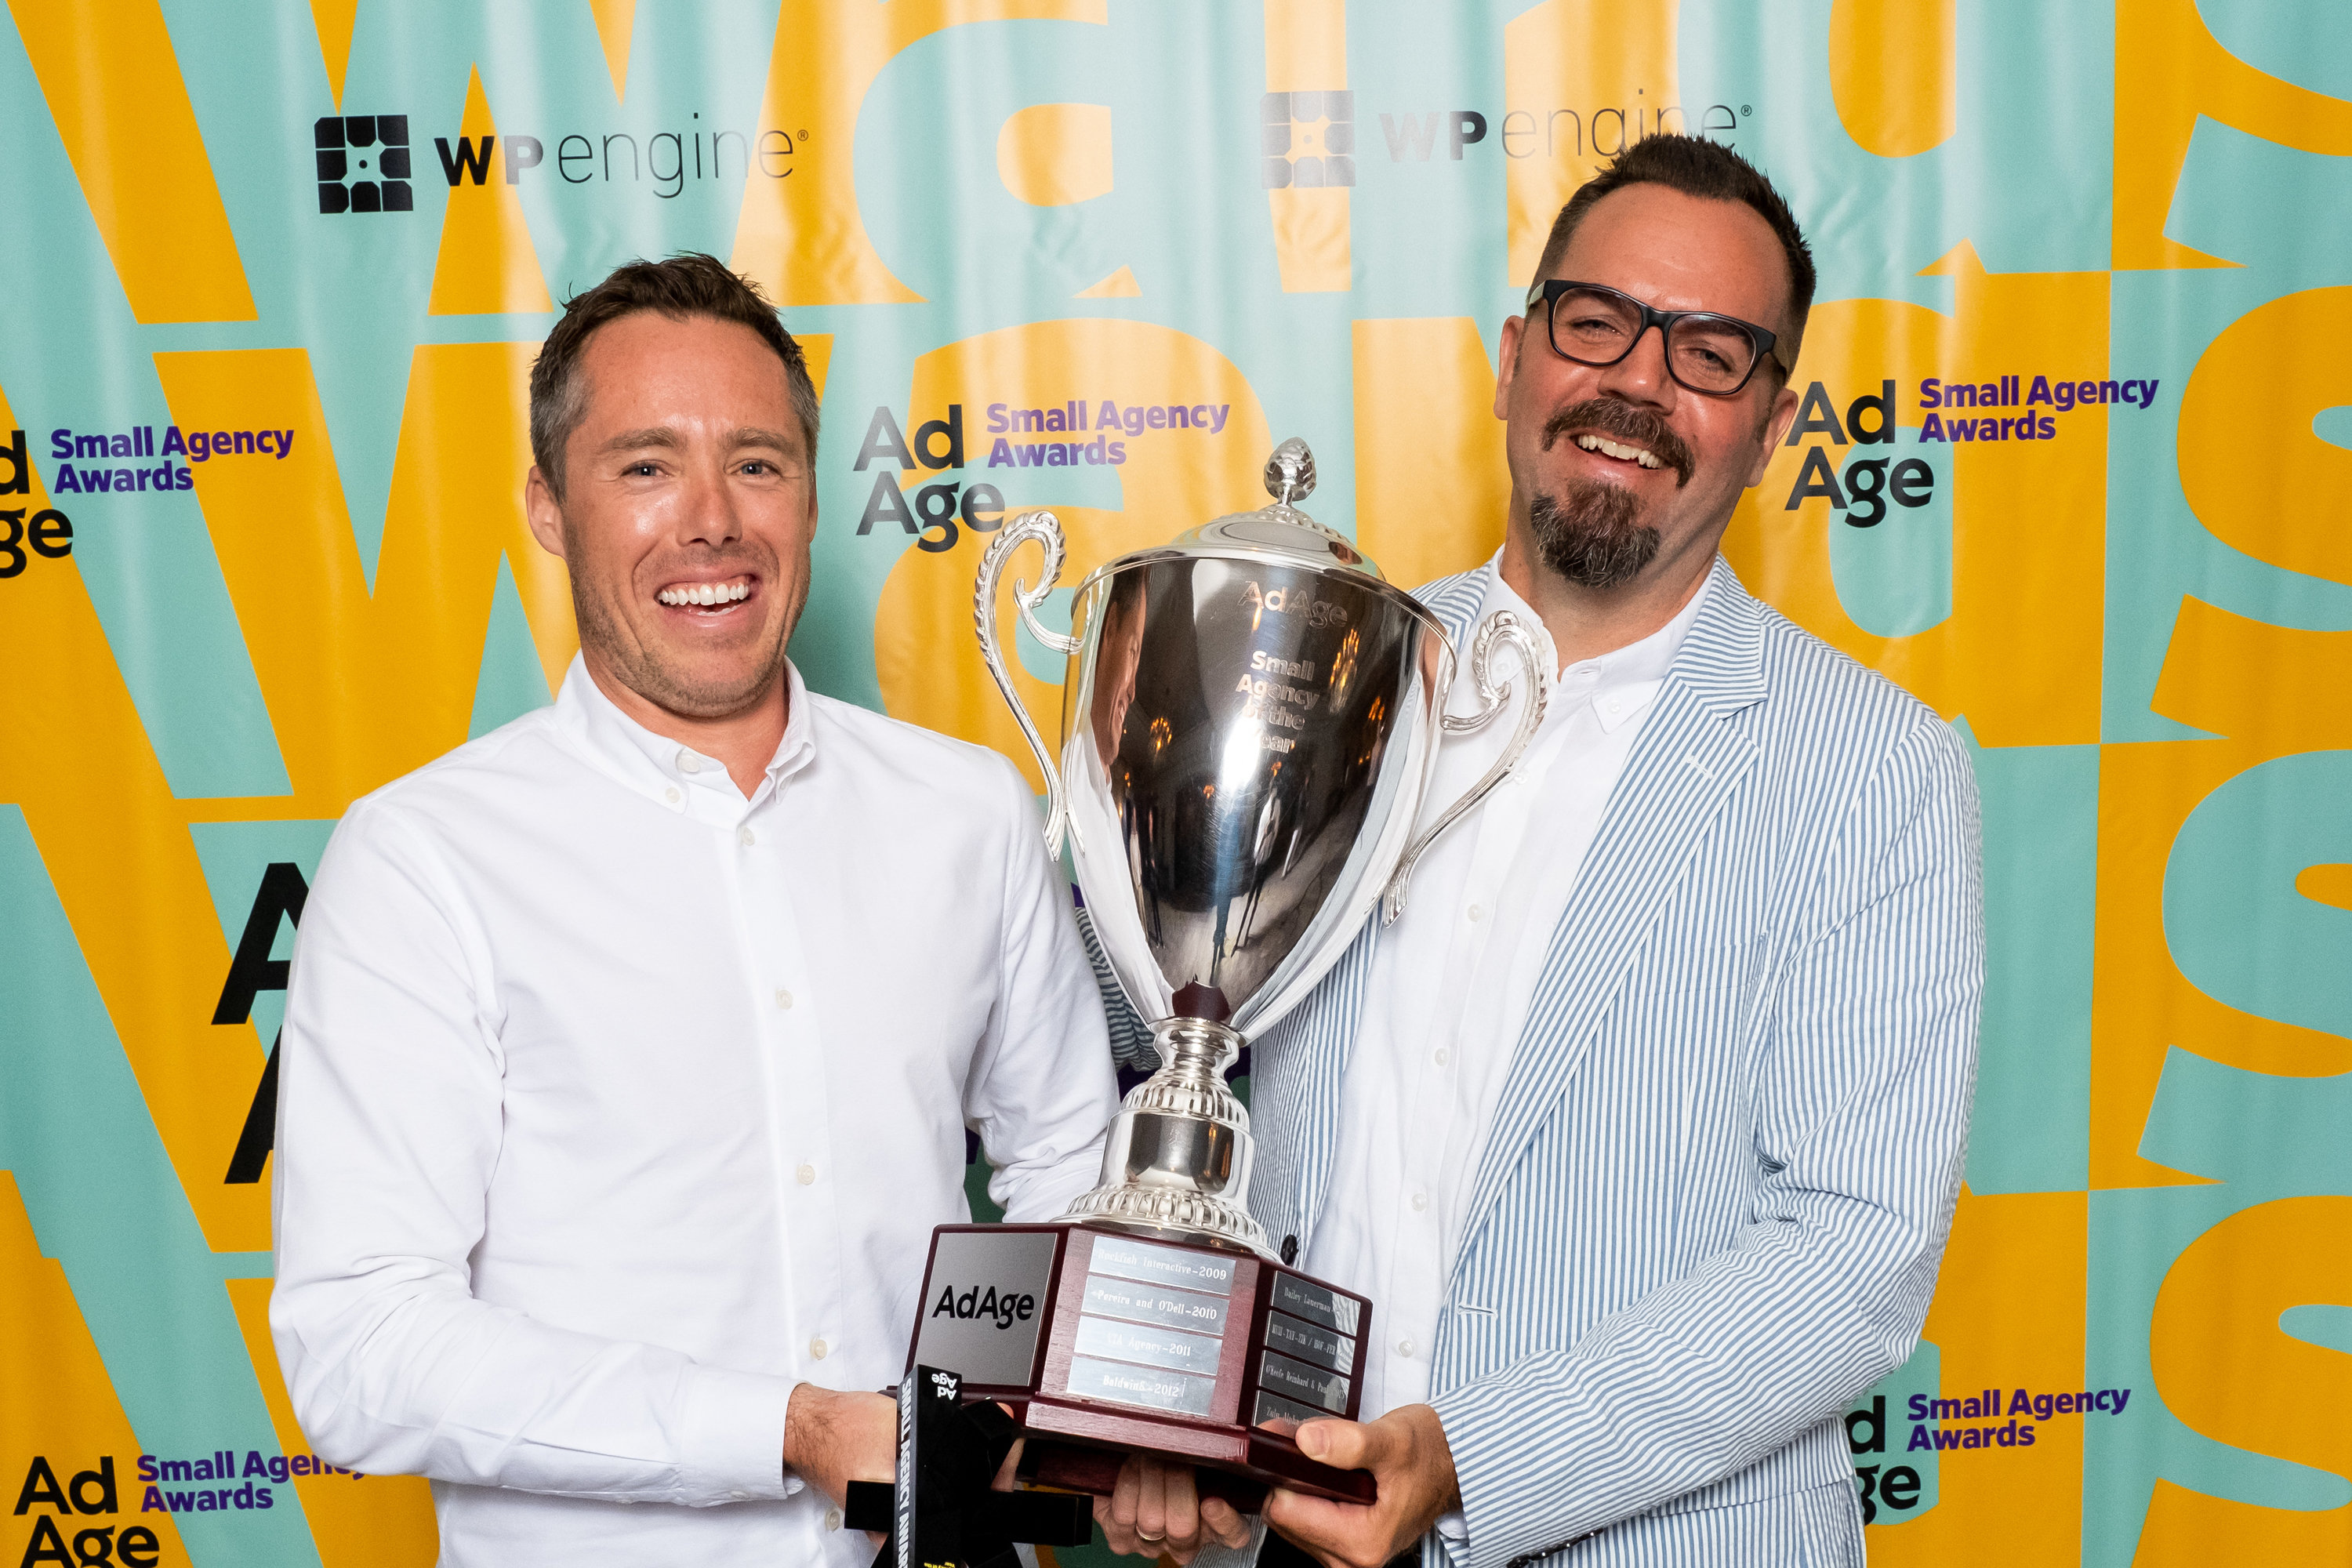 The 2019 Ad Age Small Agency Award Winners